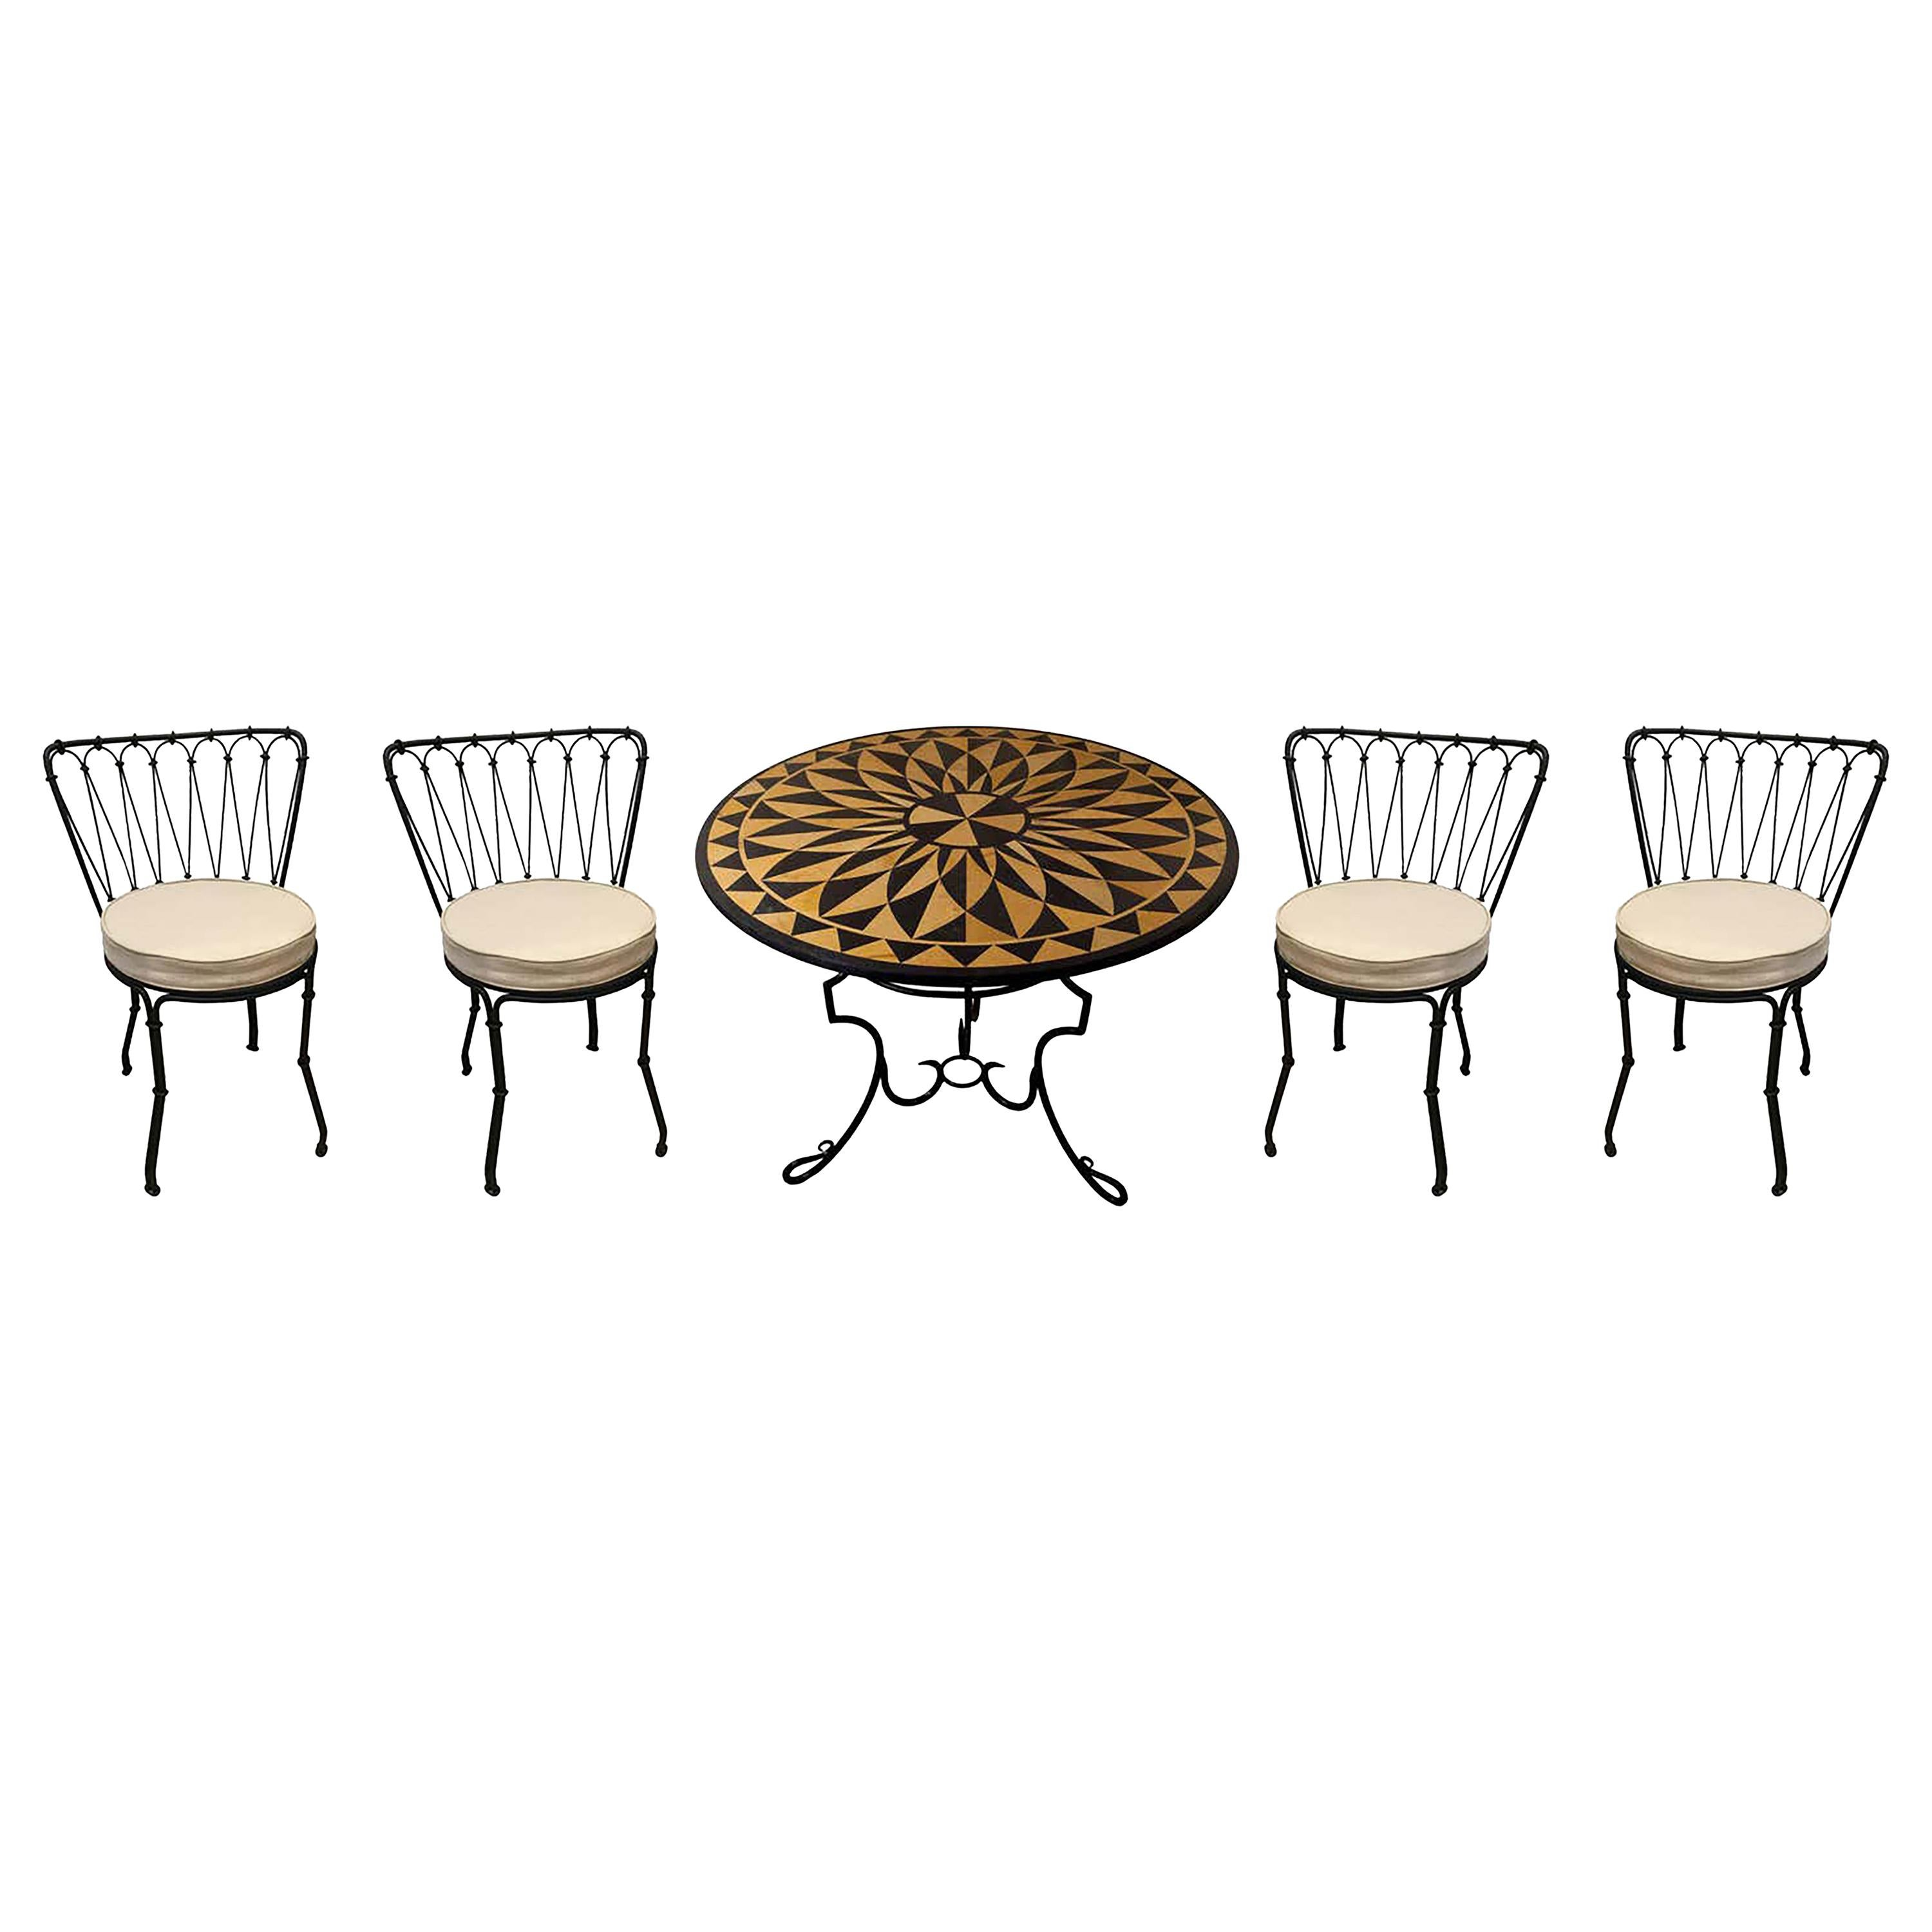 Pietra Dura Marble and Jasper Inlay Outdoor Table on Iron Base w/ 4 Iron Chairs